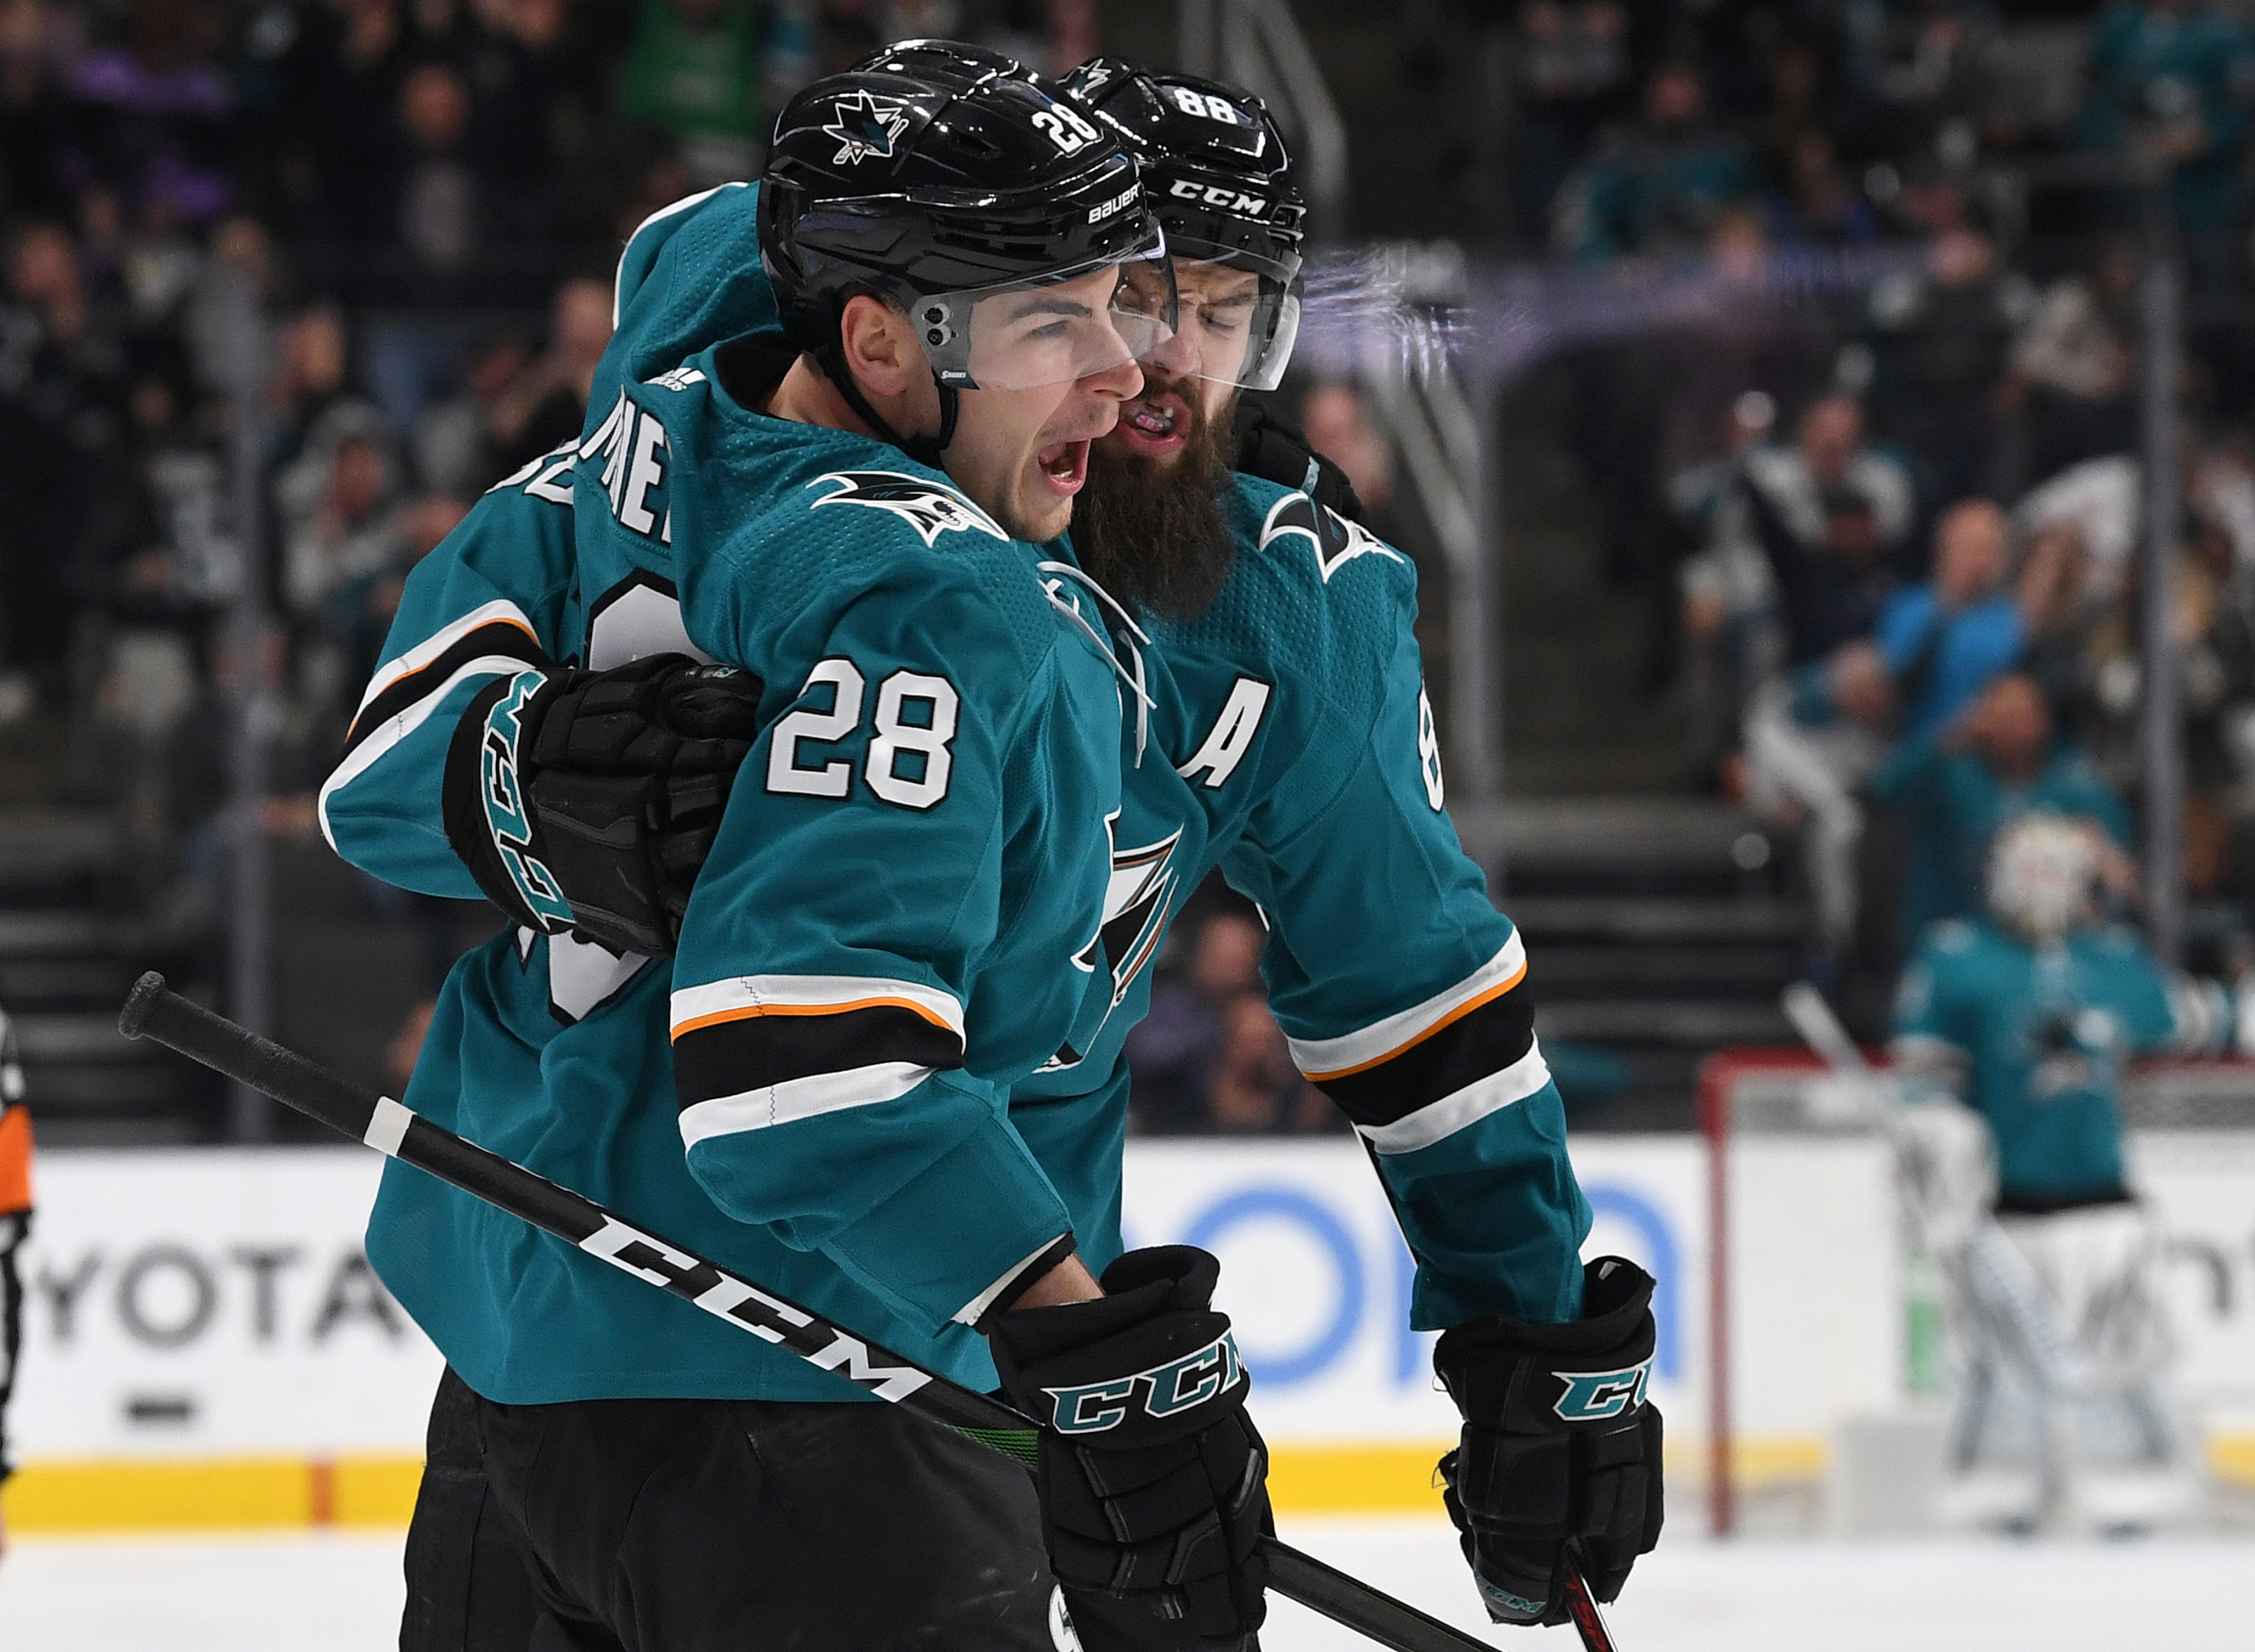 San Jose Sharks have a bright future in the face of a disappointing season